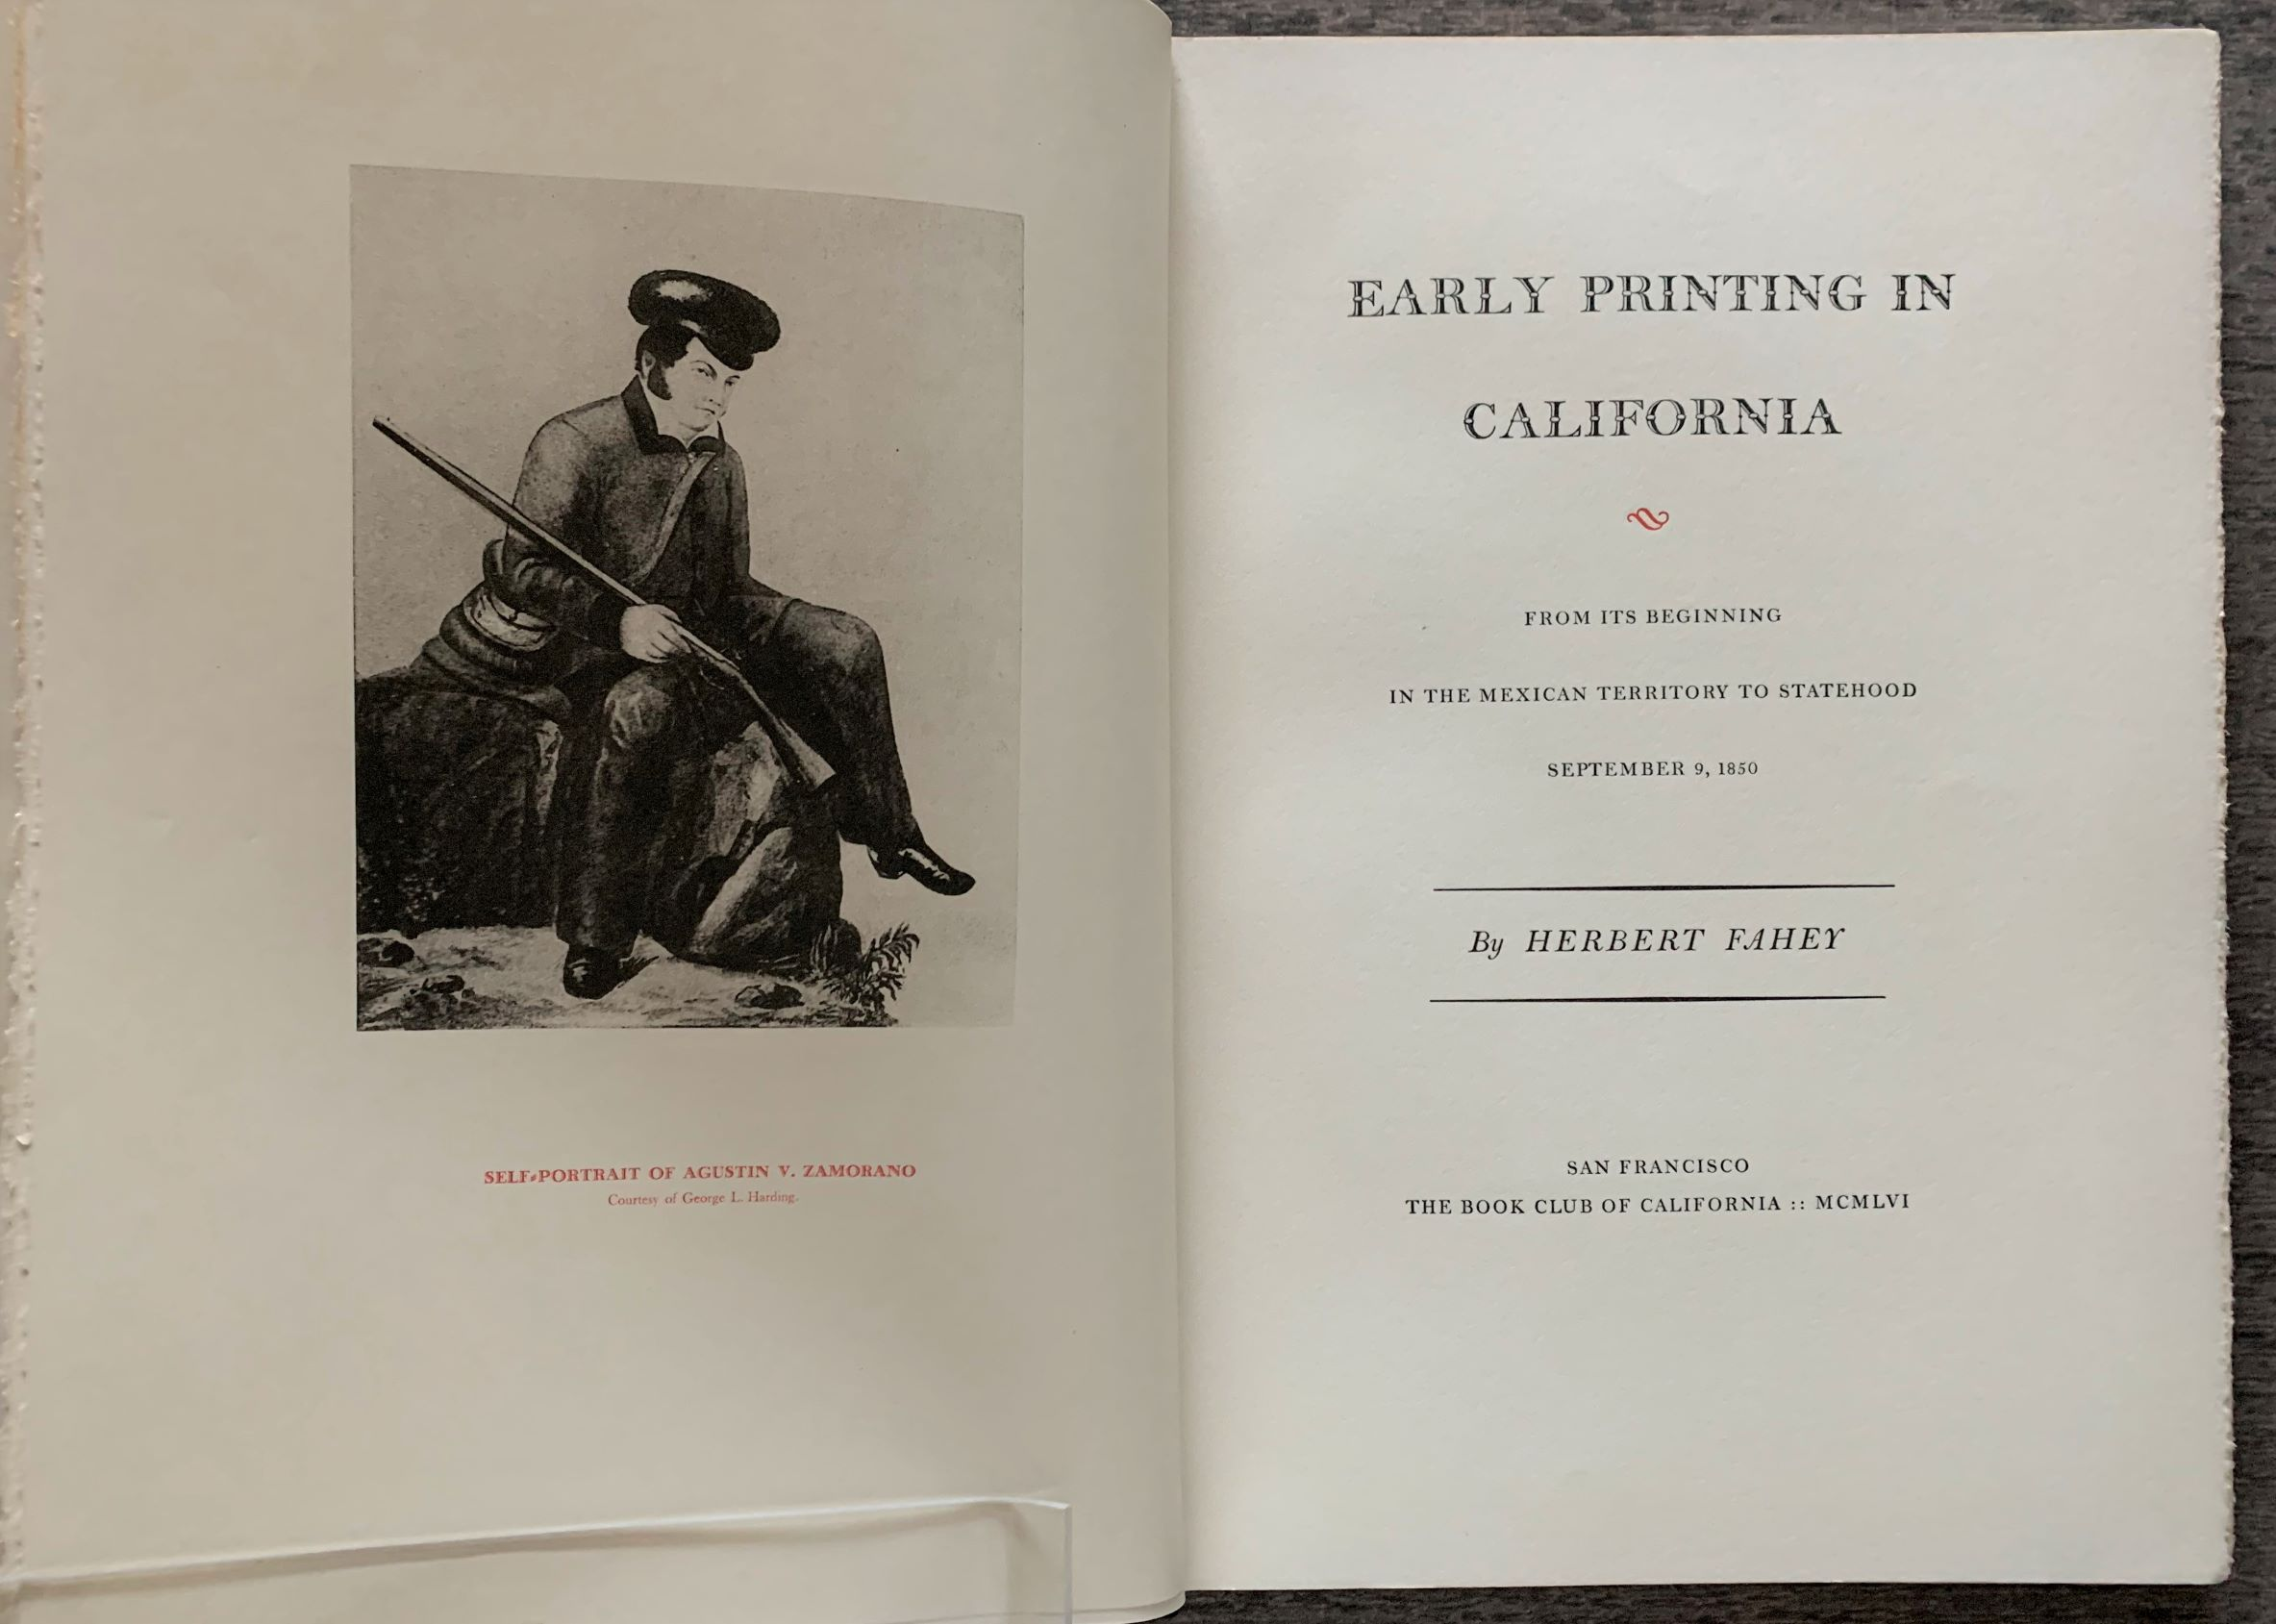 Image for Early Printing in California. From it's beginning in the Mexican Territory to Statehood, September 9, 1850.